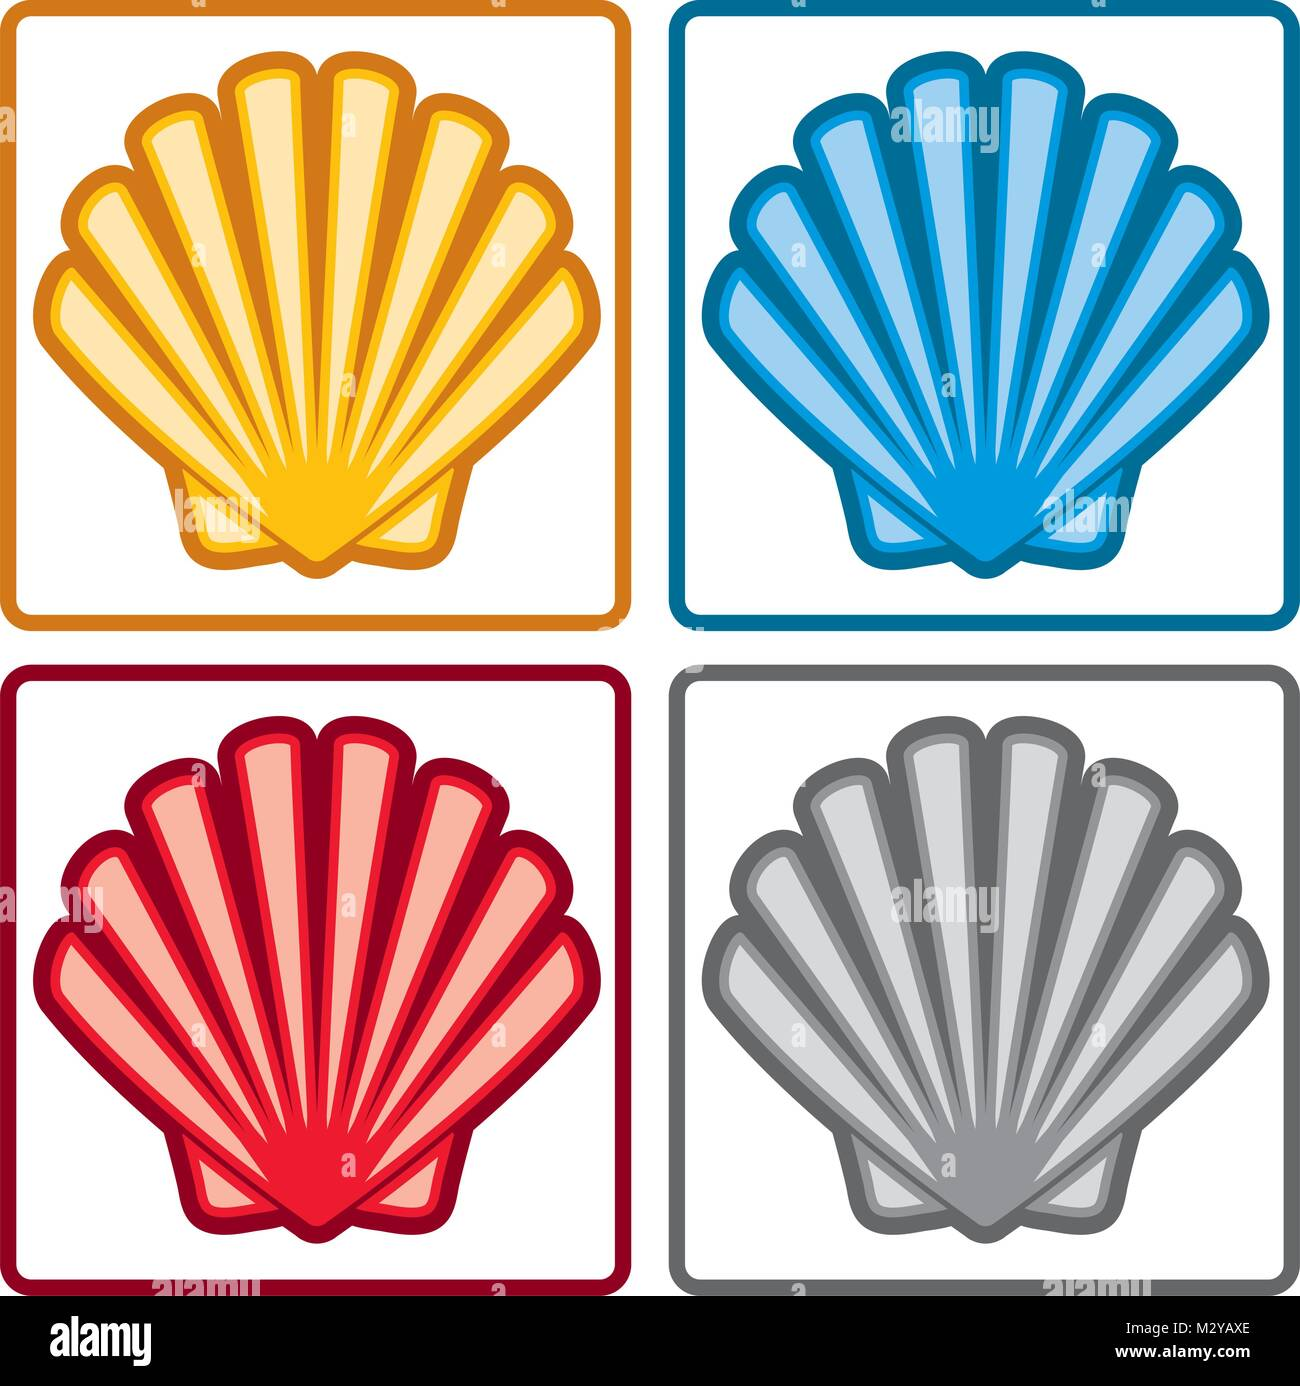 Vector sea shell icons isolated on white background yellow red vector sea shell icons isolated on white background yellow red blue and gray seashell symbols colorful collection of ocean scallop animal pictogra biocorpaavc Image collections